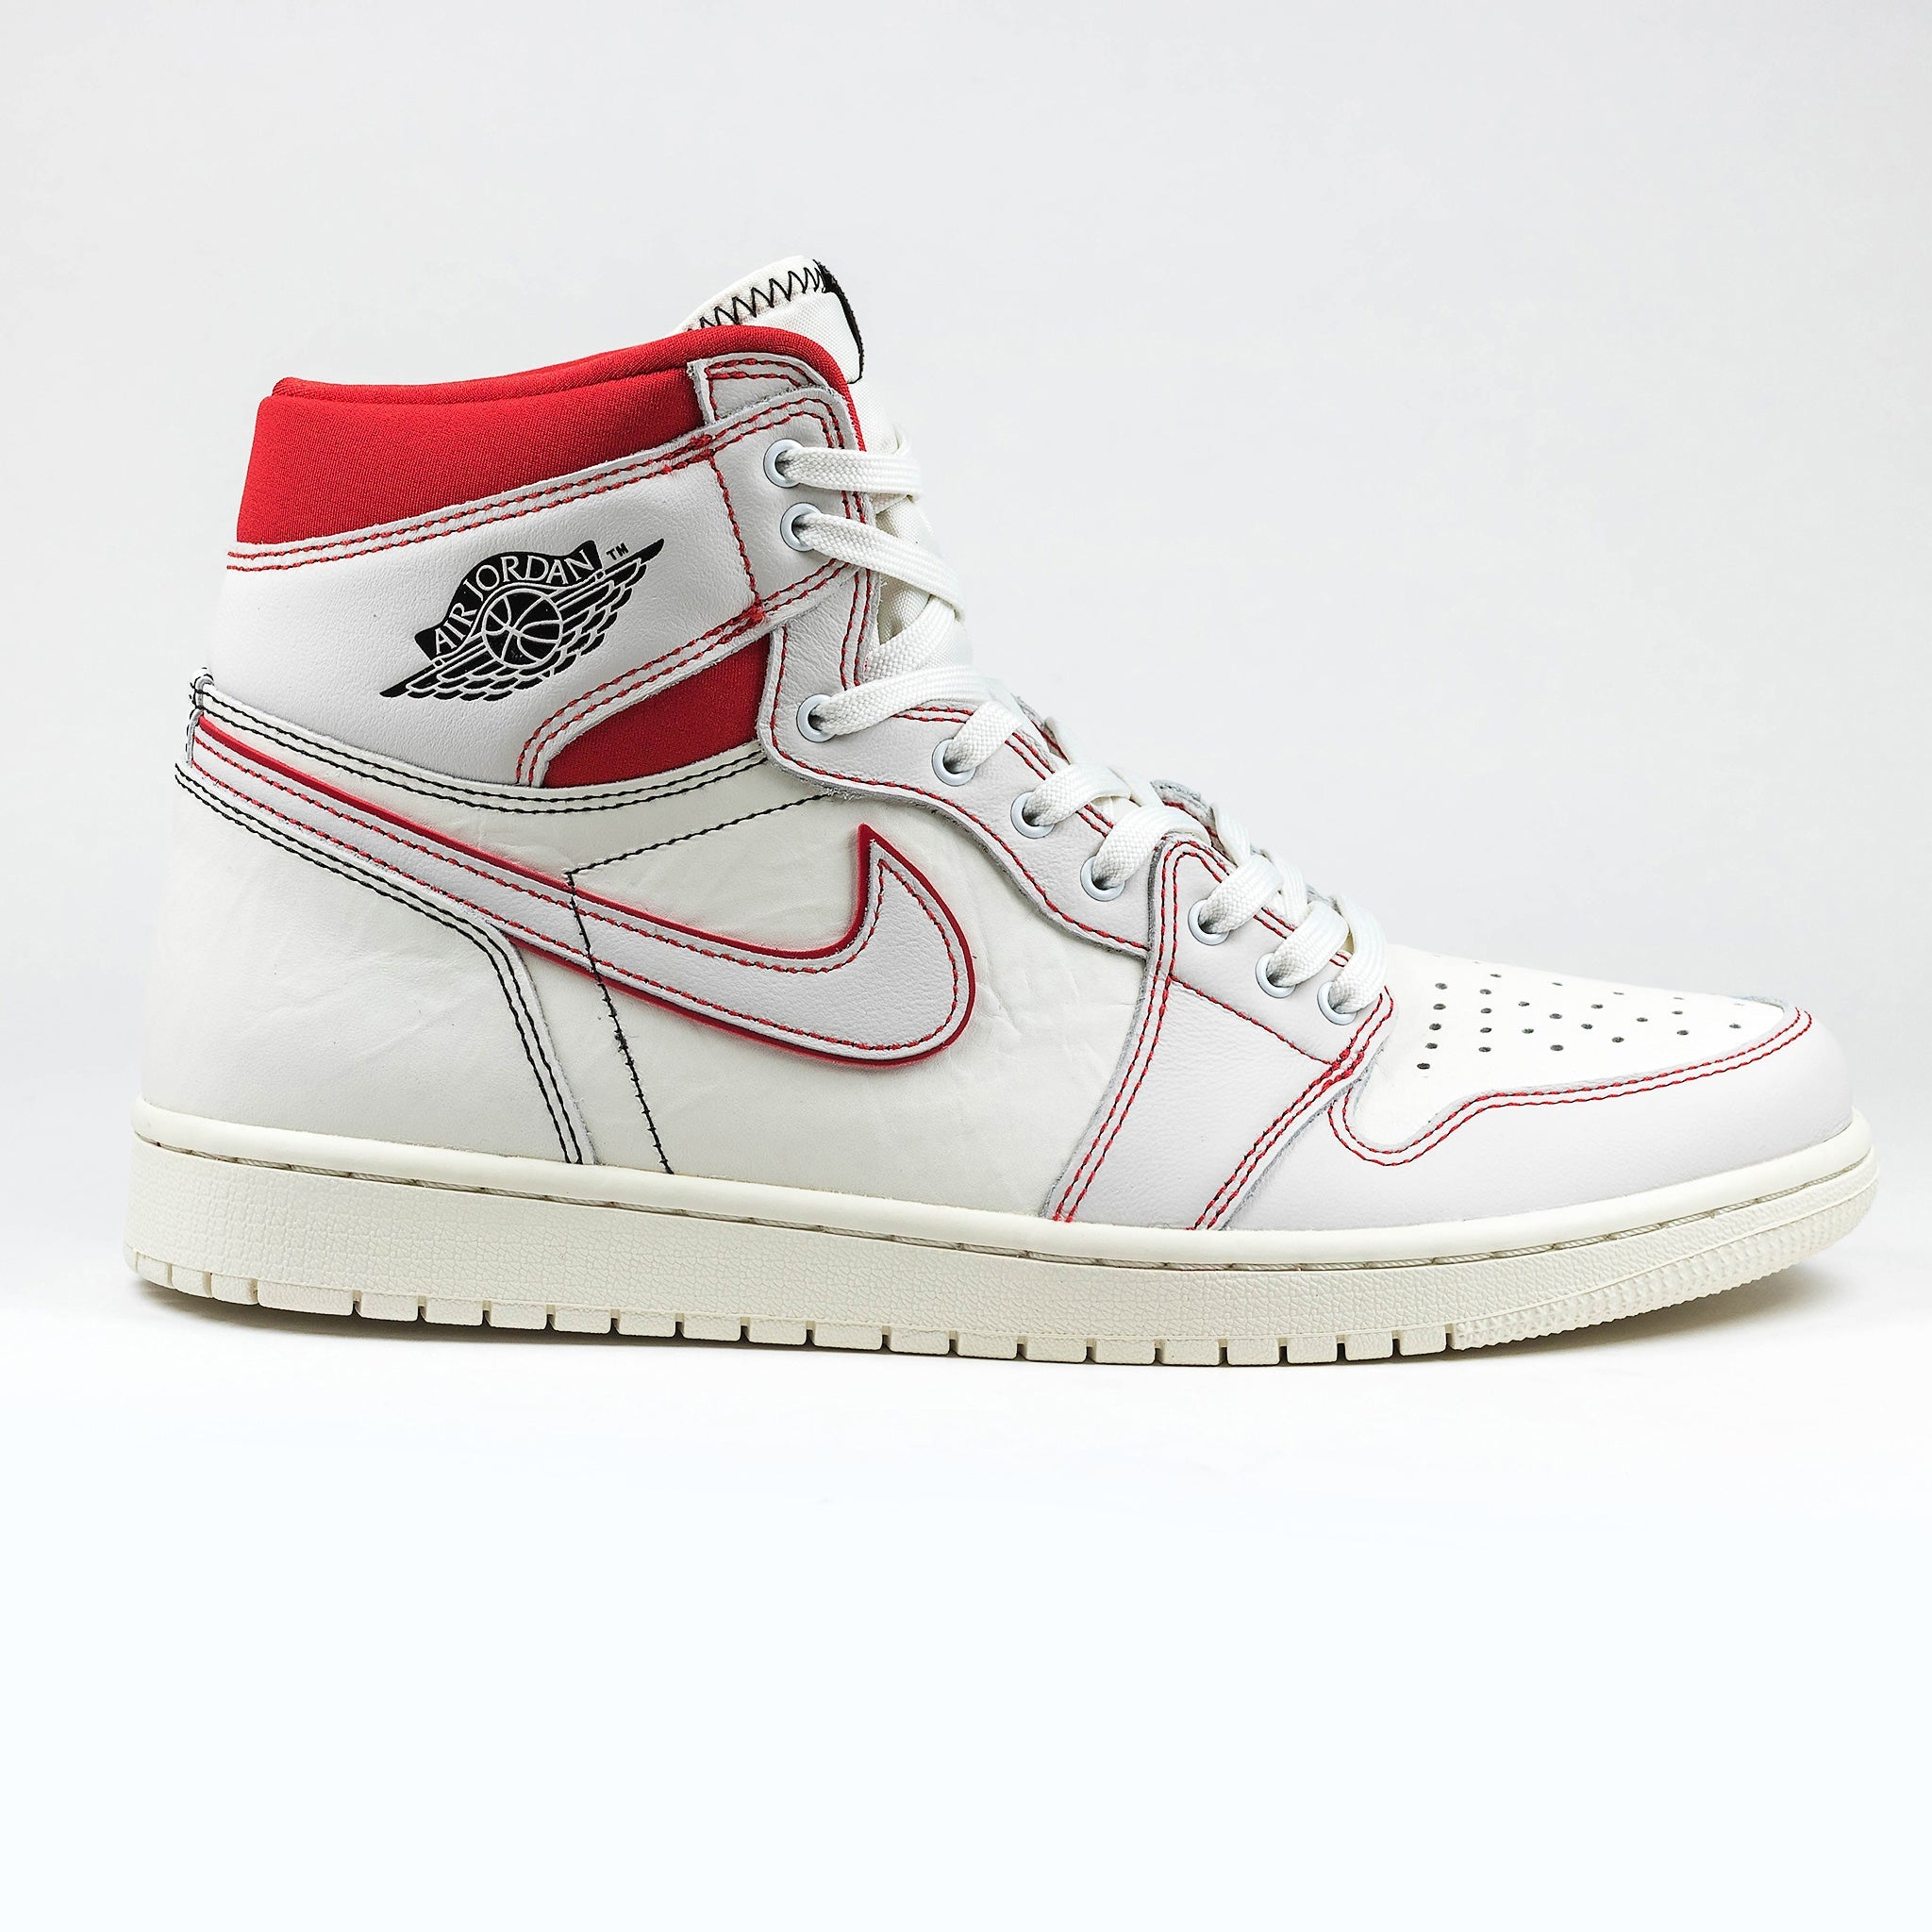 3f31e35a1 Nike Air Jordan 1 Retro High Phantom White University Red – Crepslocker